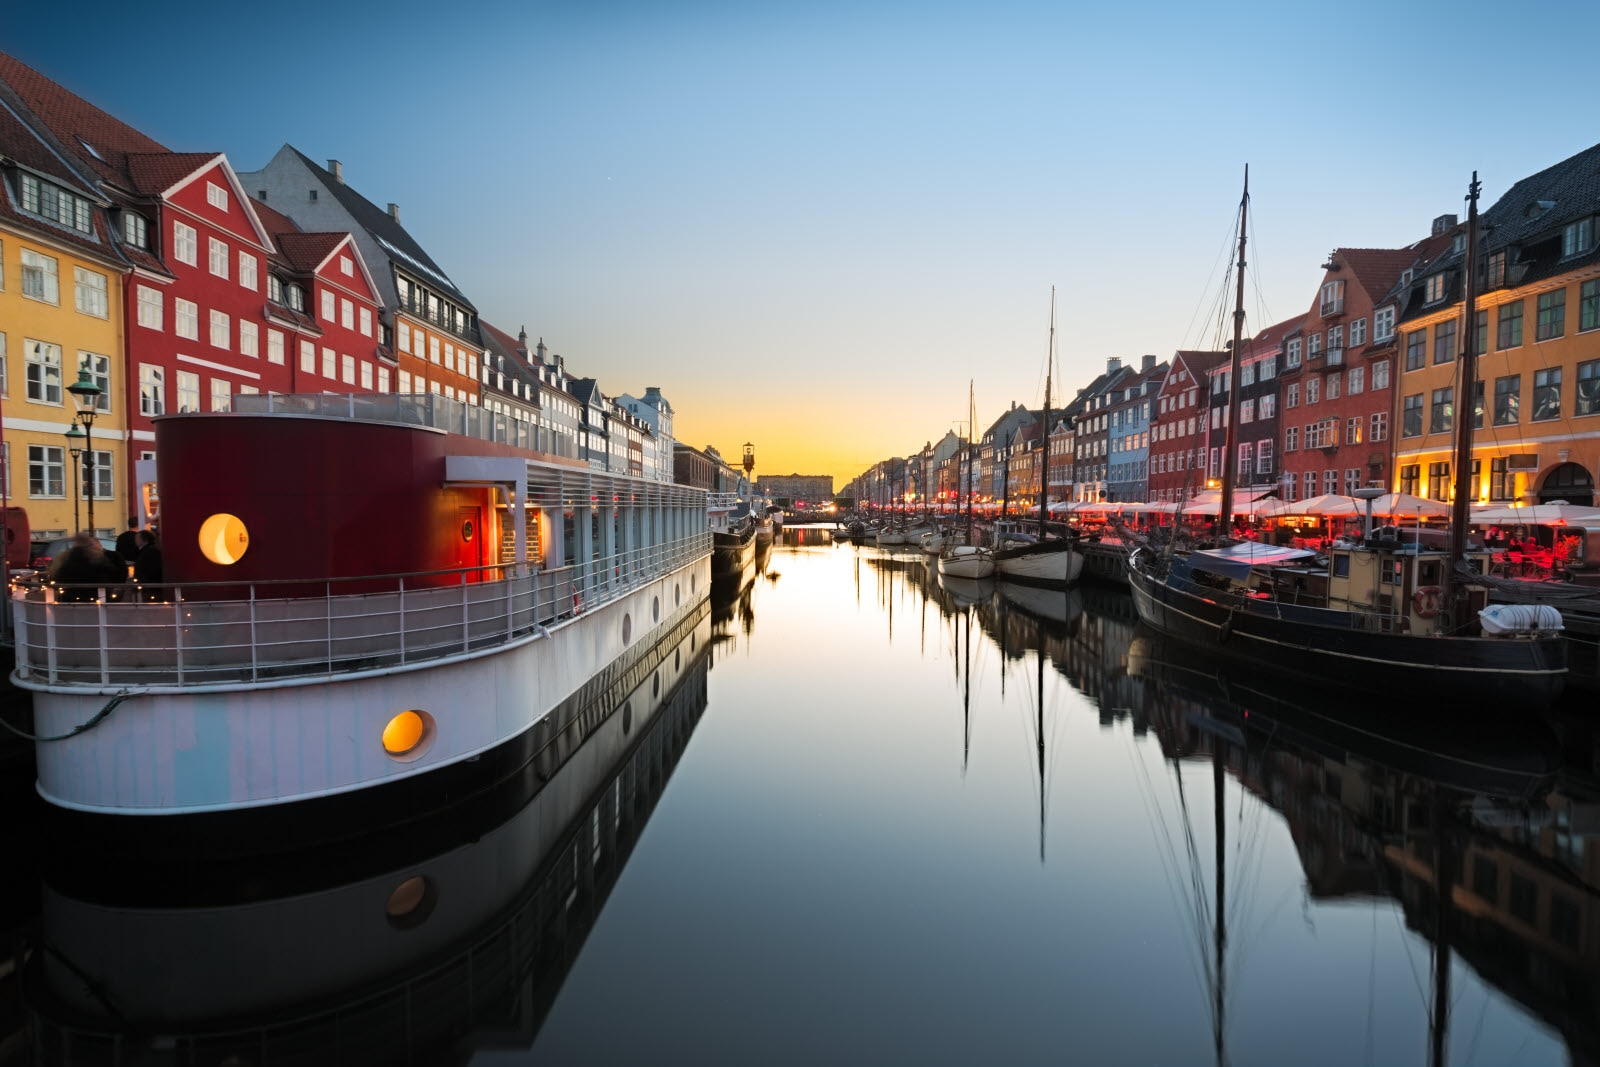 Ships in Nyhavn at sunset, Copenhagen, Denmark